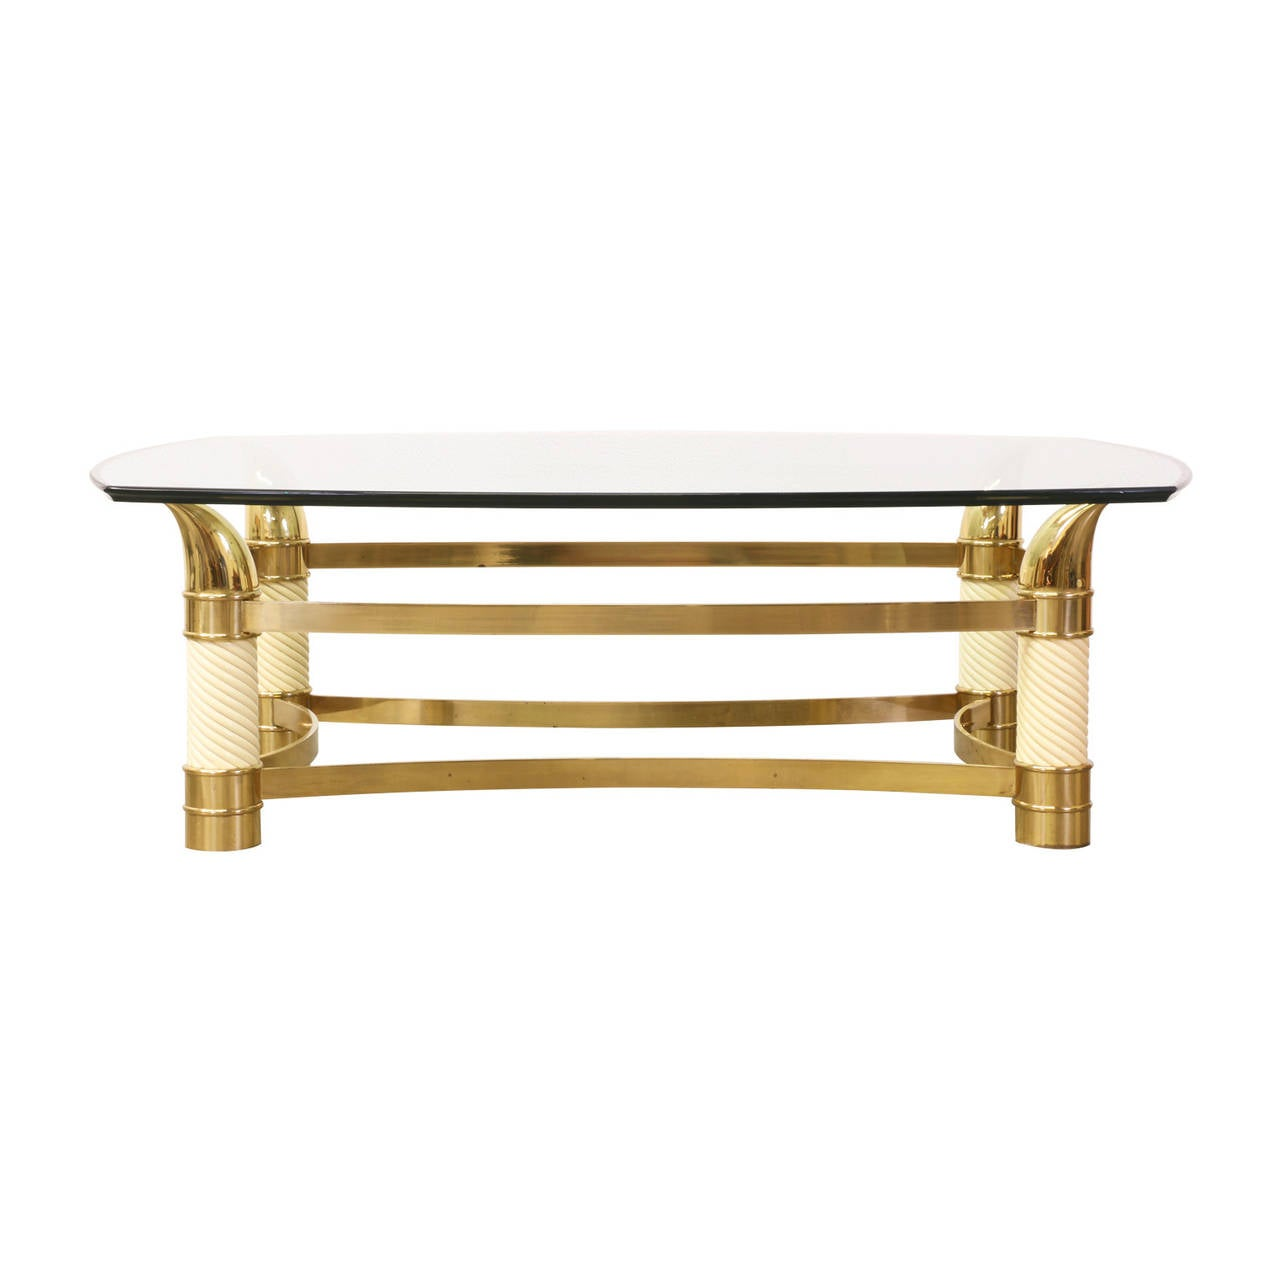 Vintage Italian Brass Horn Coffee Table With Glass Top At 1stdibs